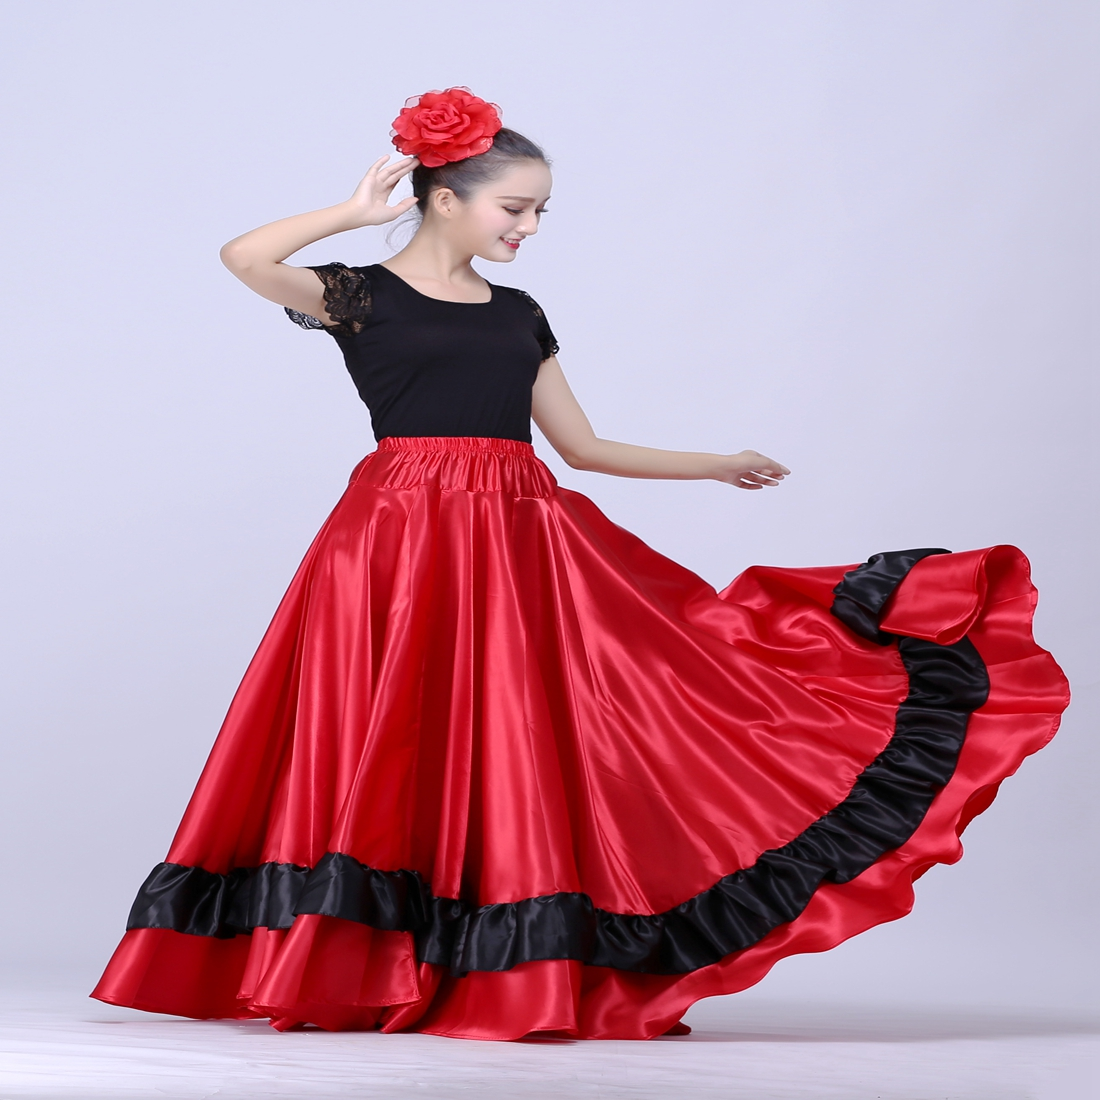 8ef53b912 L720 Degree Sc 1 St DHgate.com. image number 3 of flamenco costumes  australia; Description; degree sc st dhgate com also spanish flamenco skirt  belly dance ...